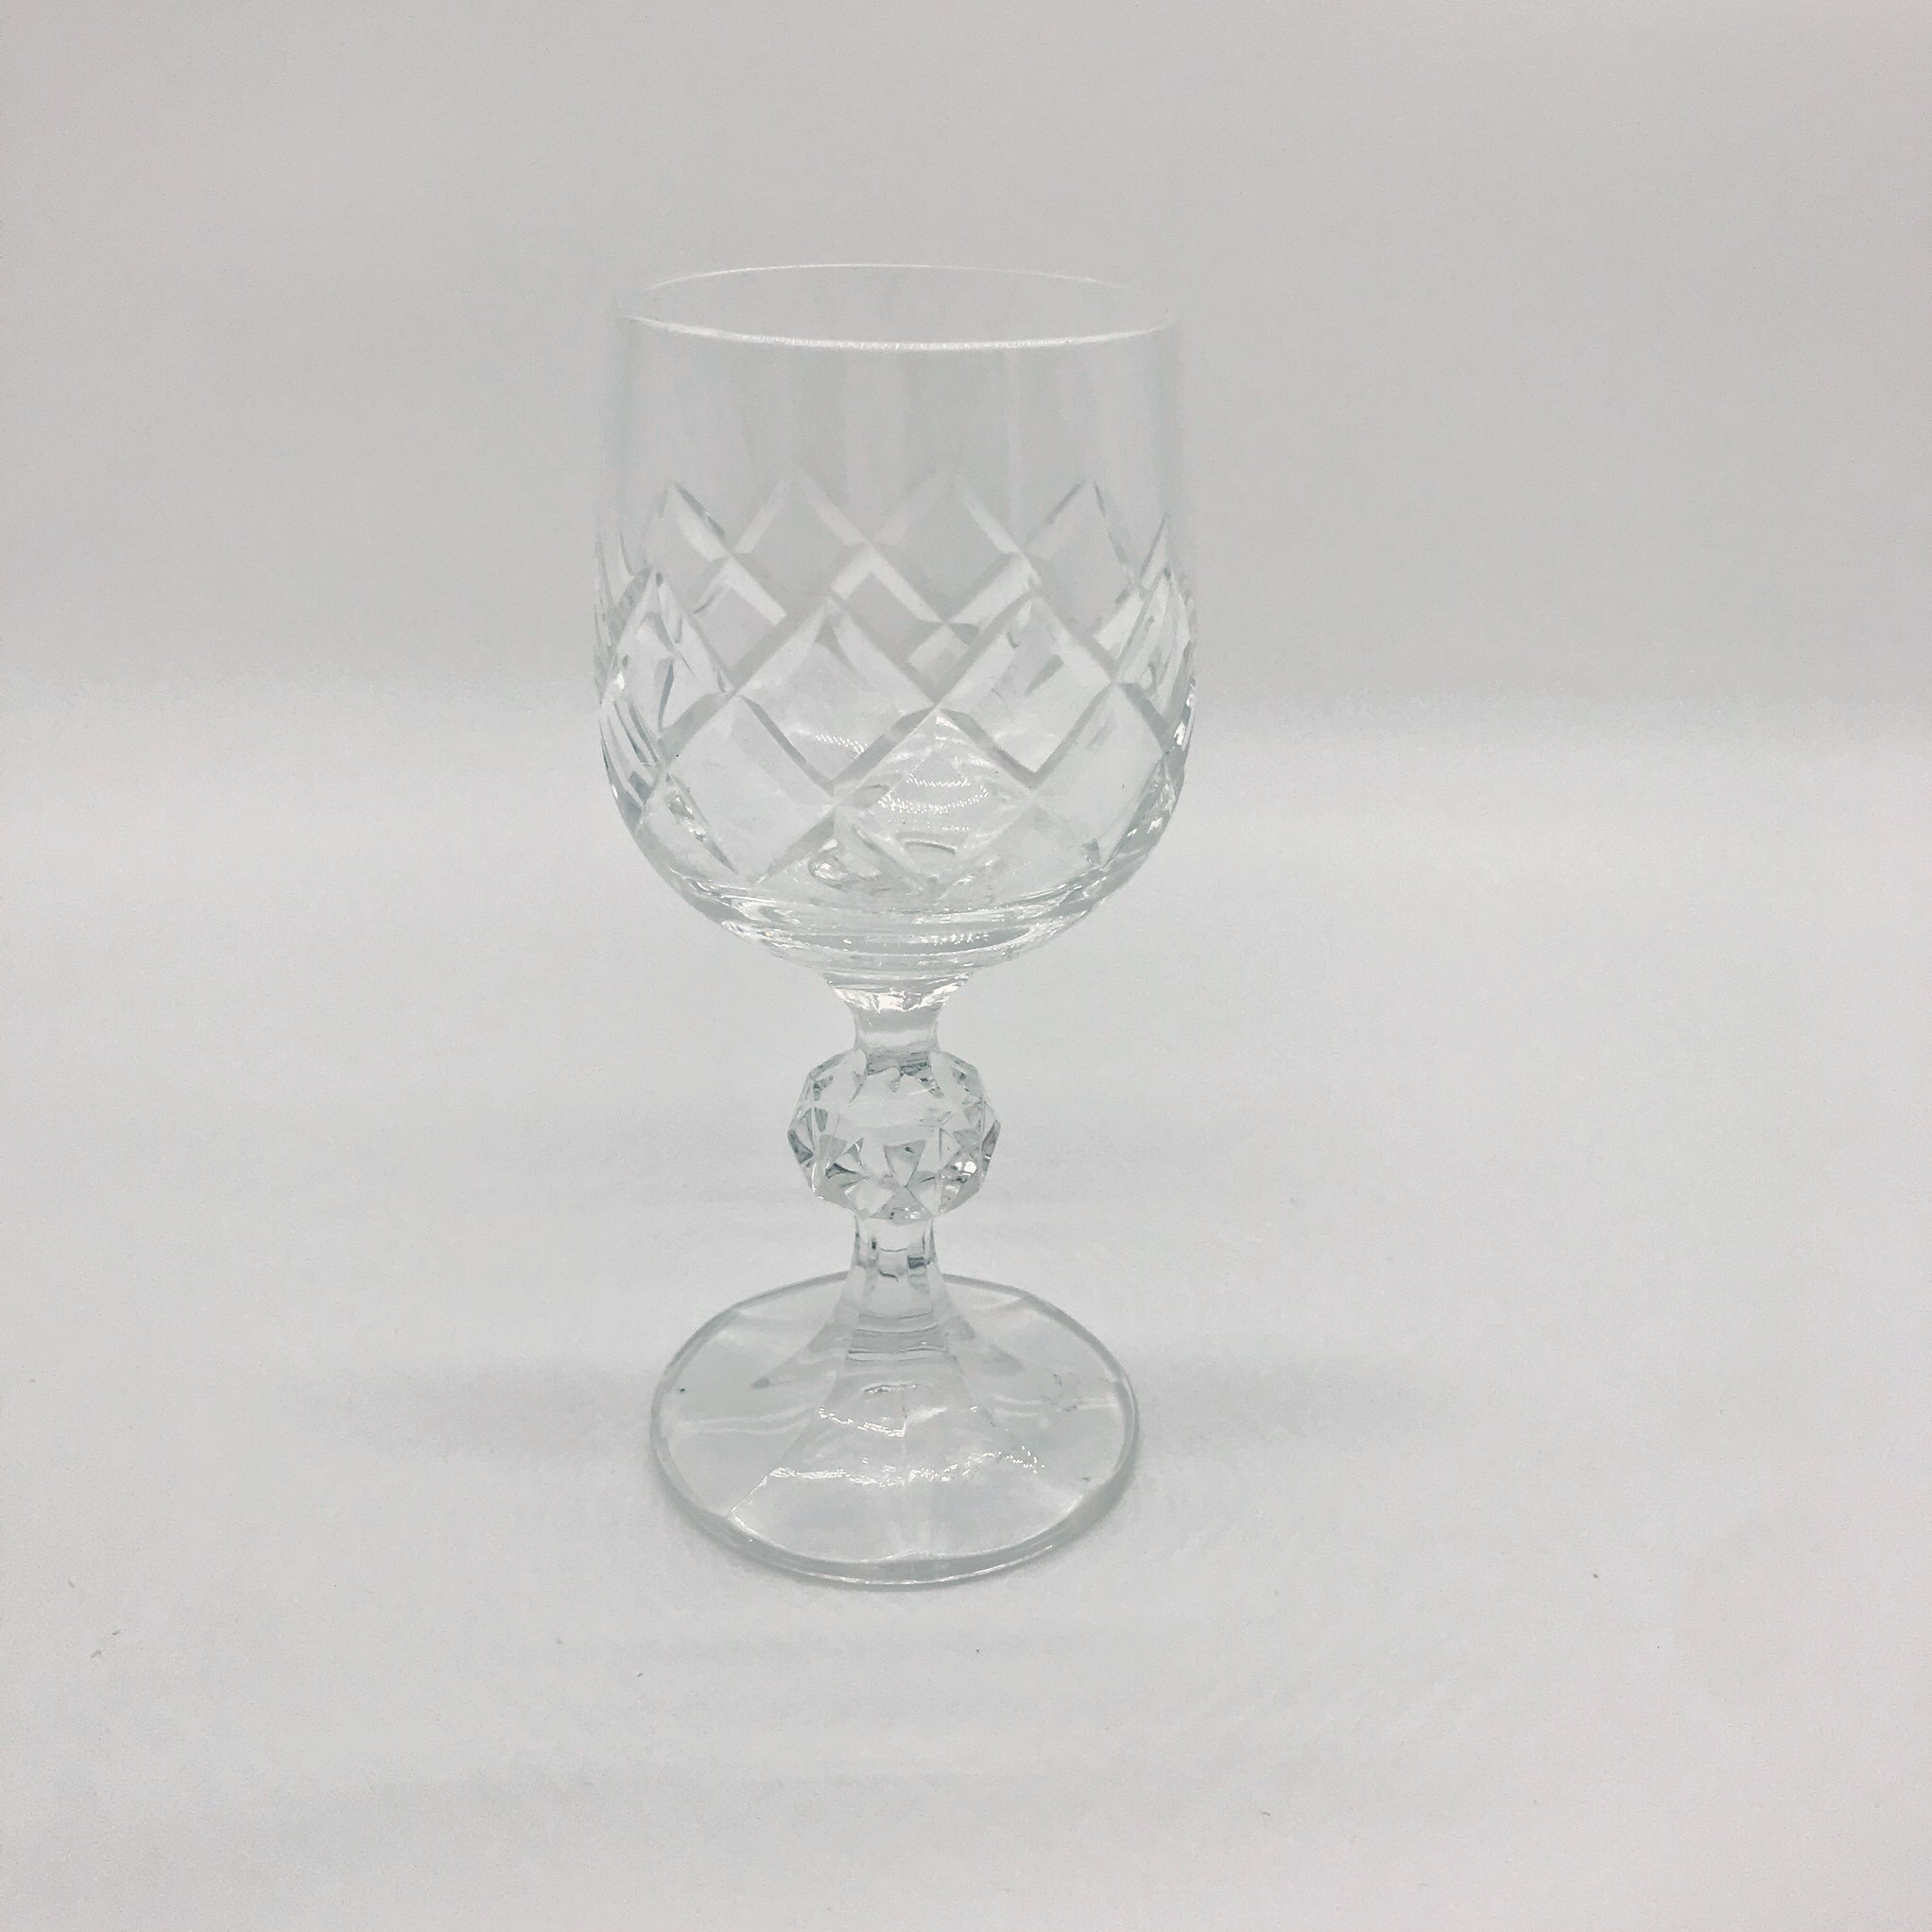 Vintage goblet (small)  Price: $2.00  Qty: 1 set